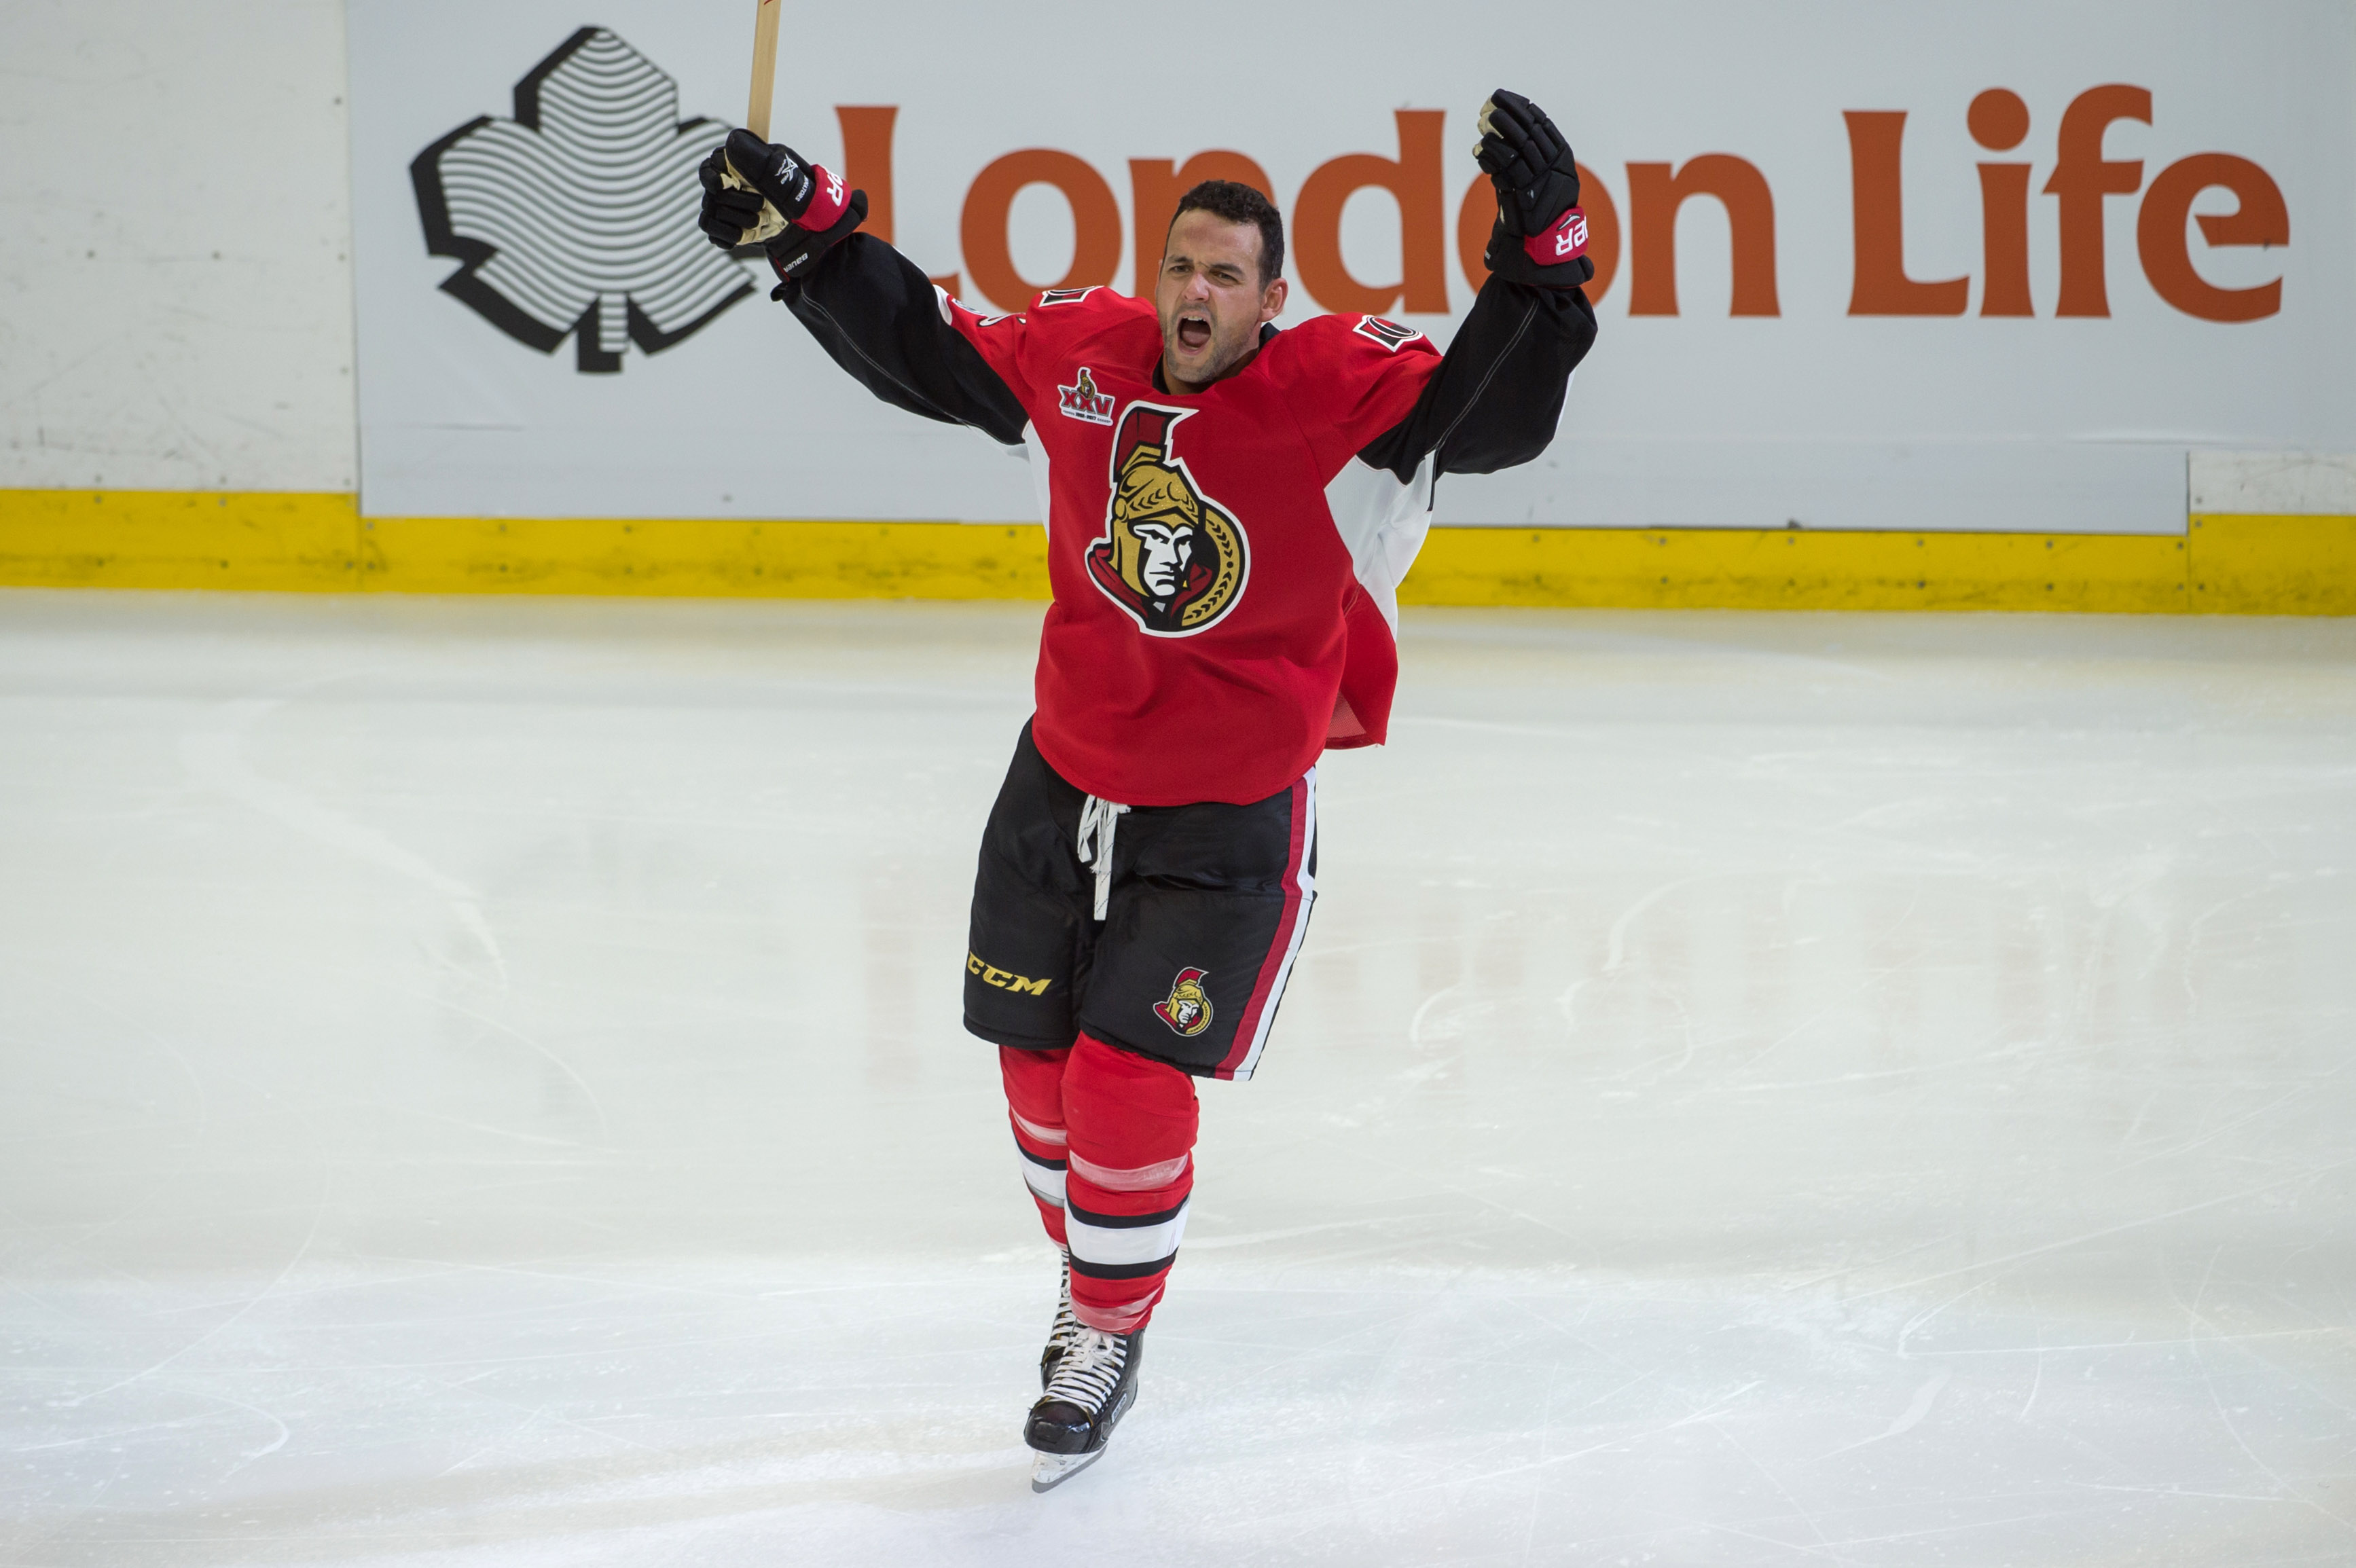 10014282-nhl-boston-bruins-at-ottawa-senators